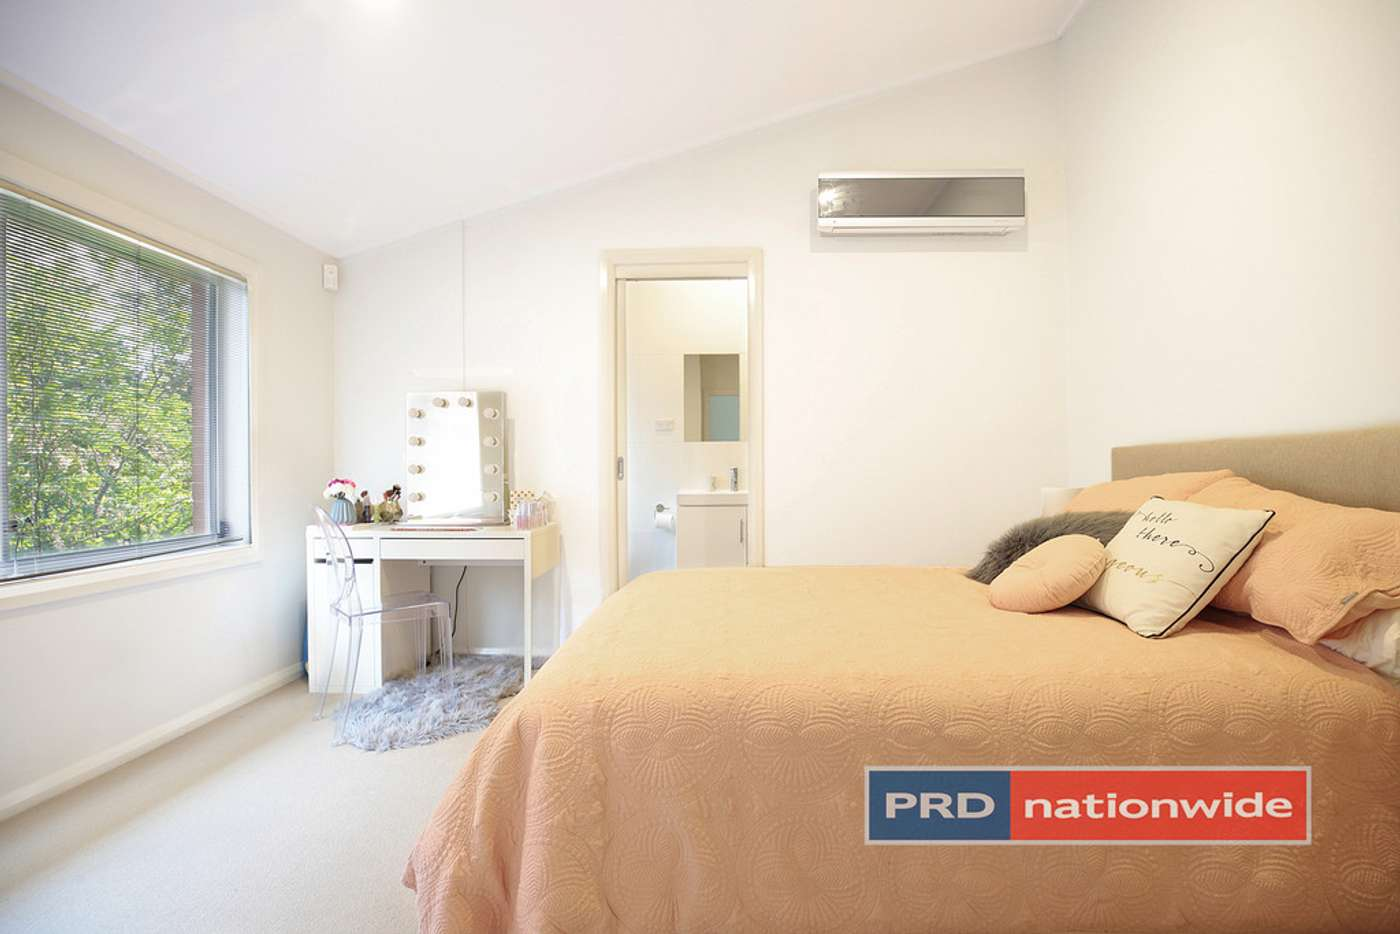 Sixth view of Homely house listing, 1/21-25 Orth Street, Kingswood NSW 2747